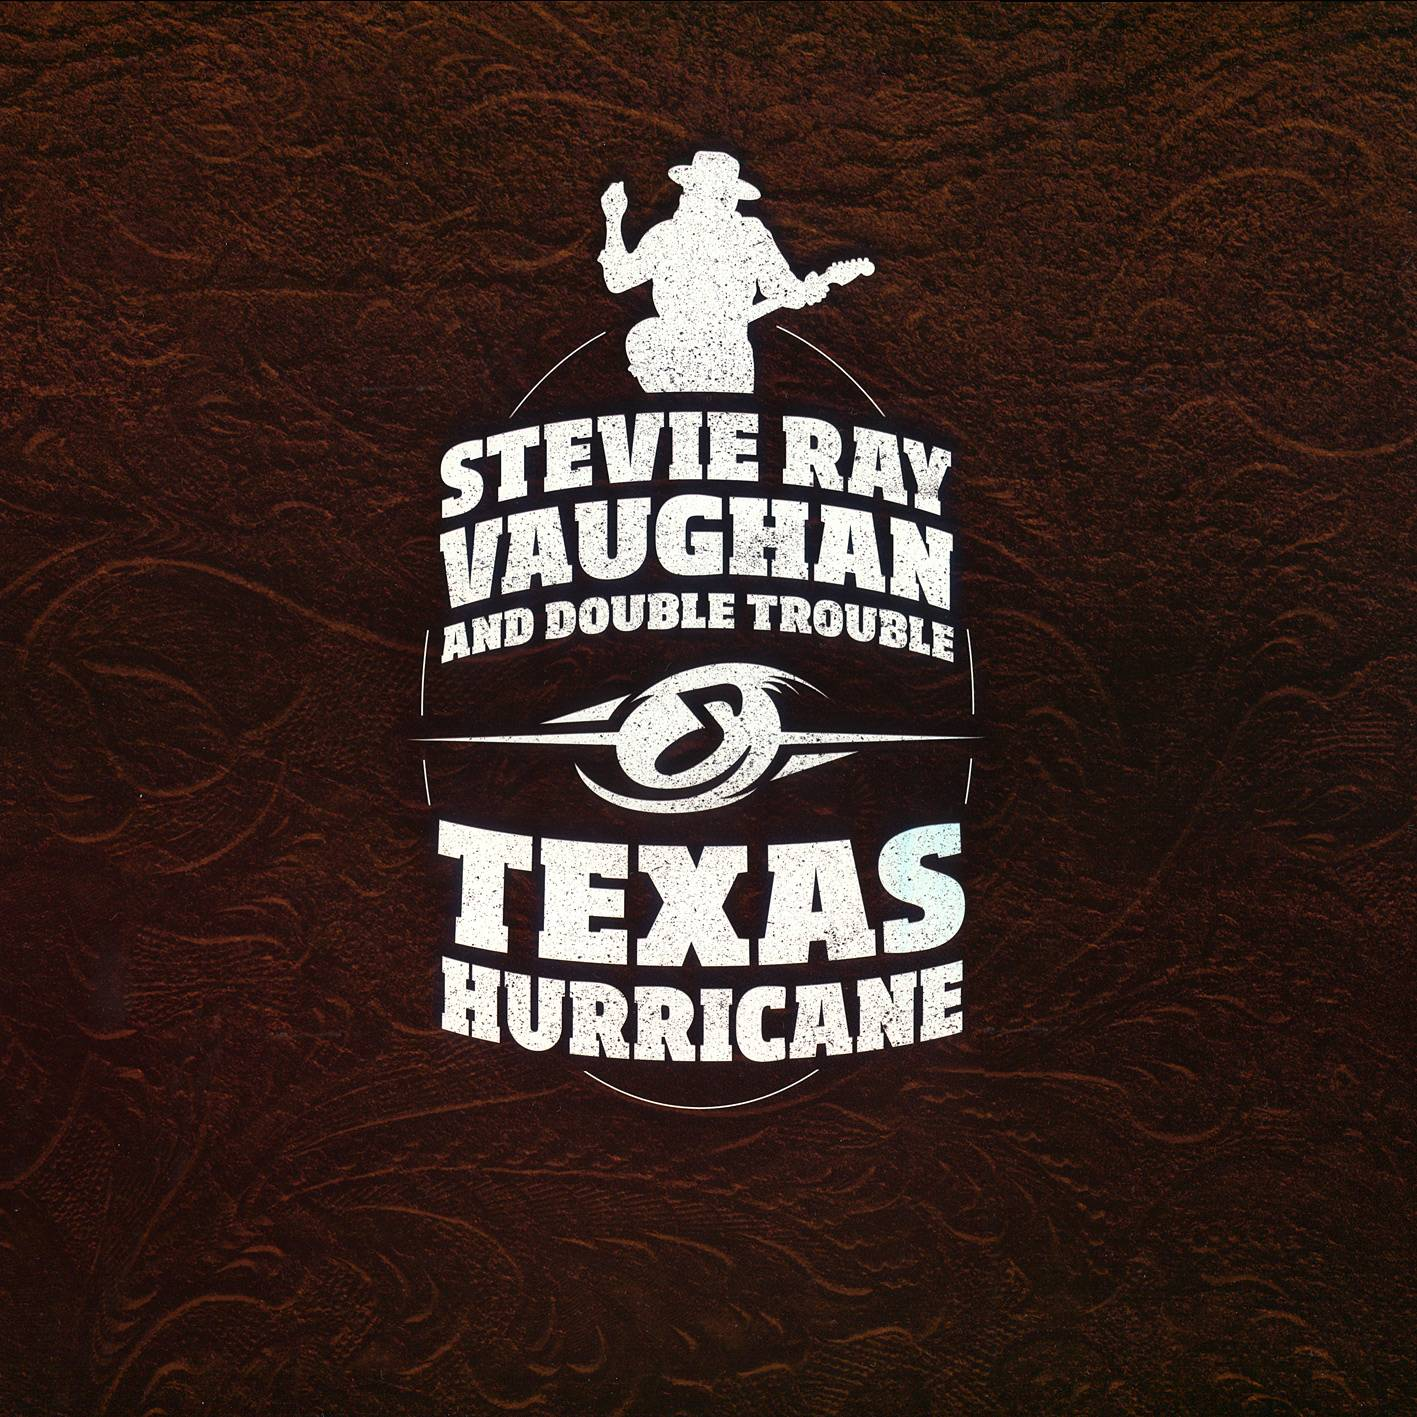 Stevie Ray Vaughan And Double Trouble - Texas Hurricane